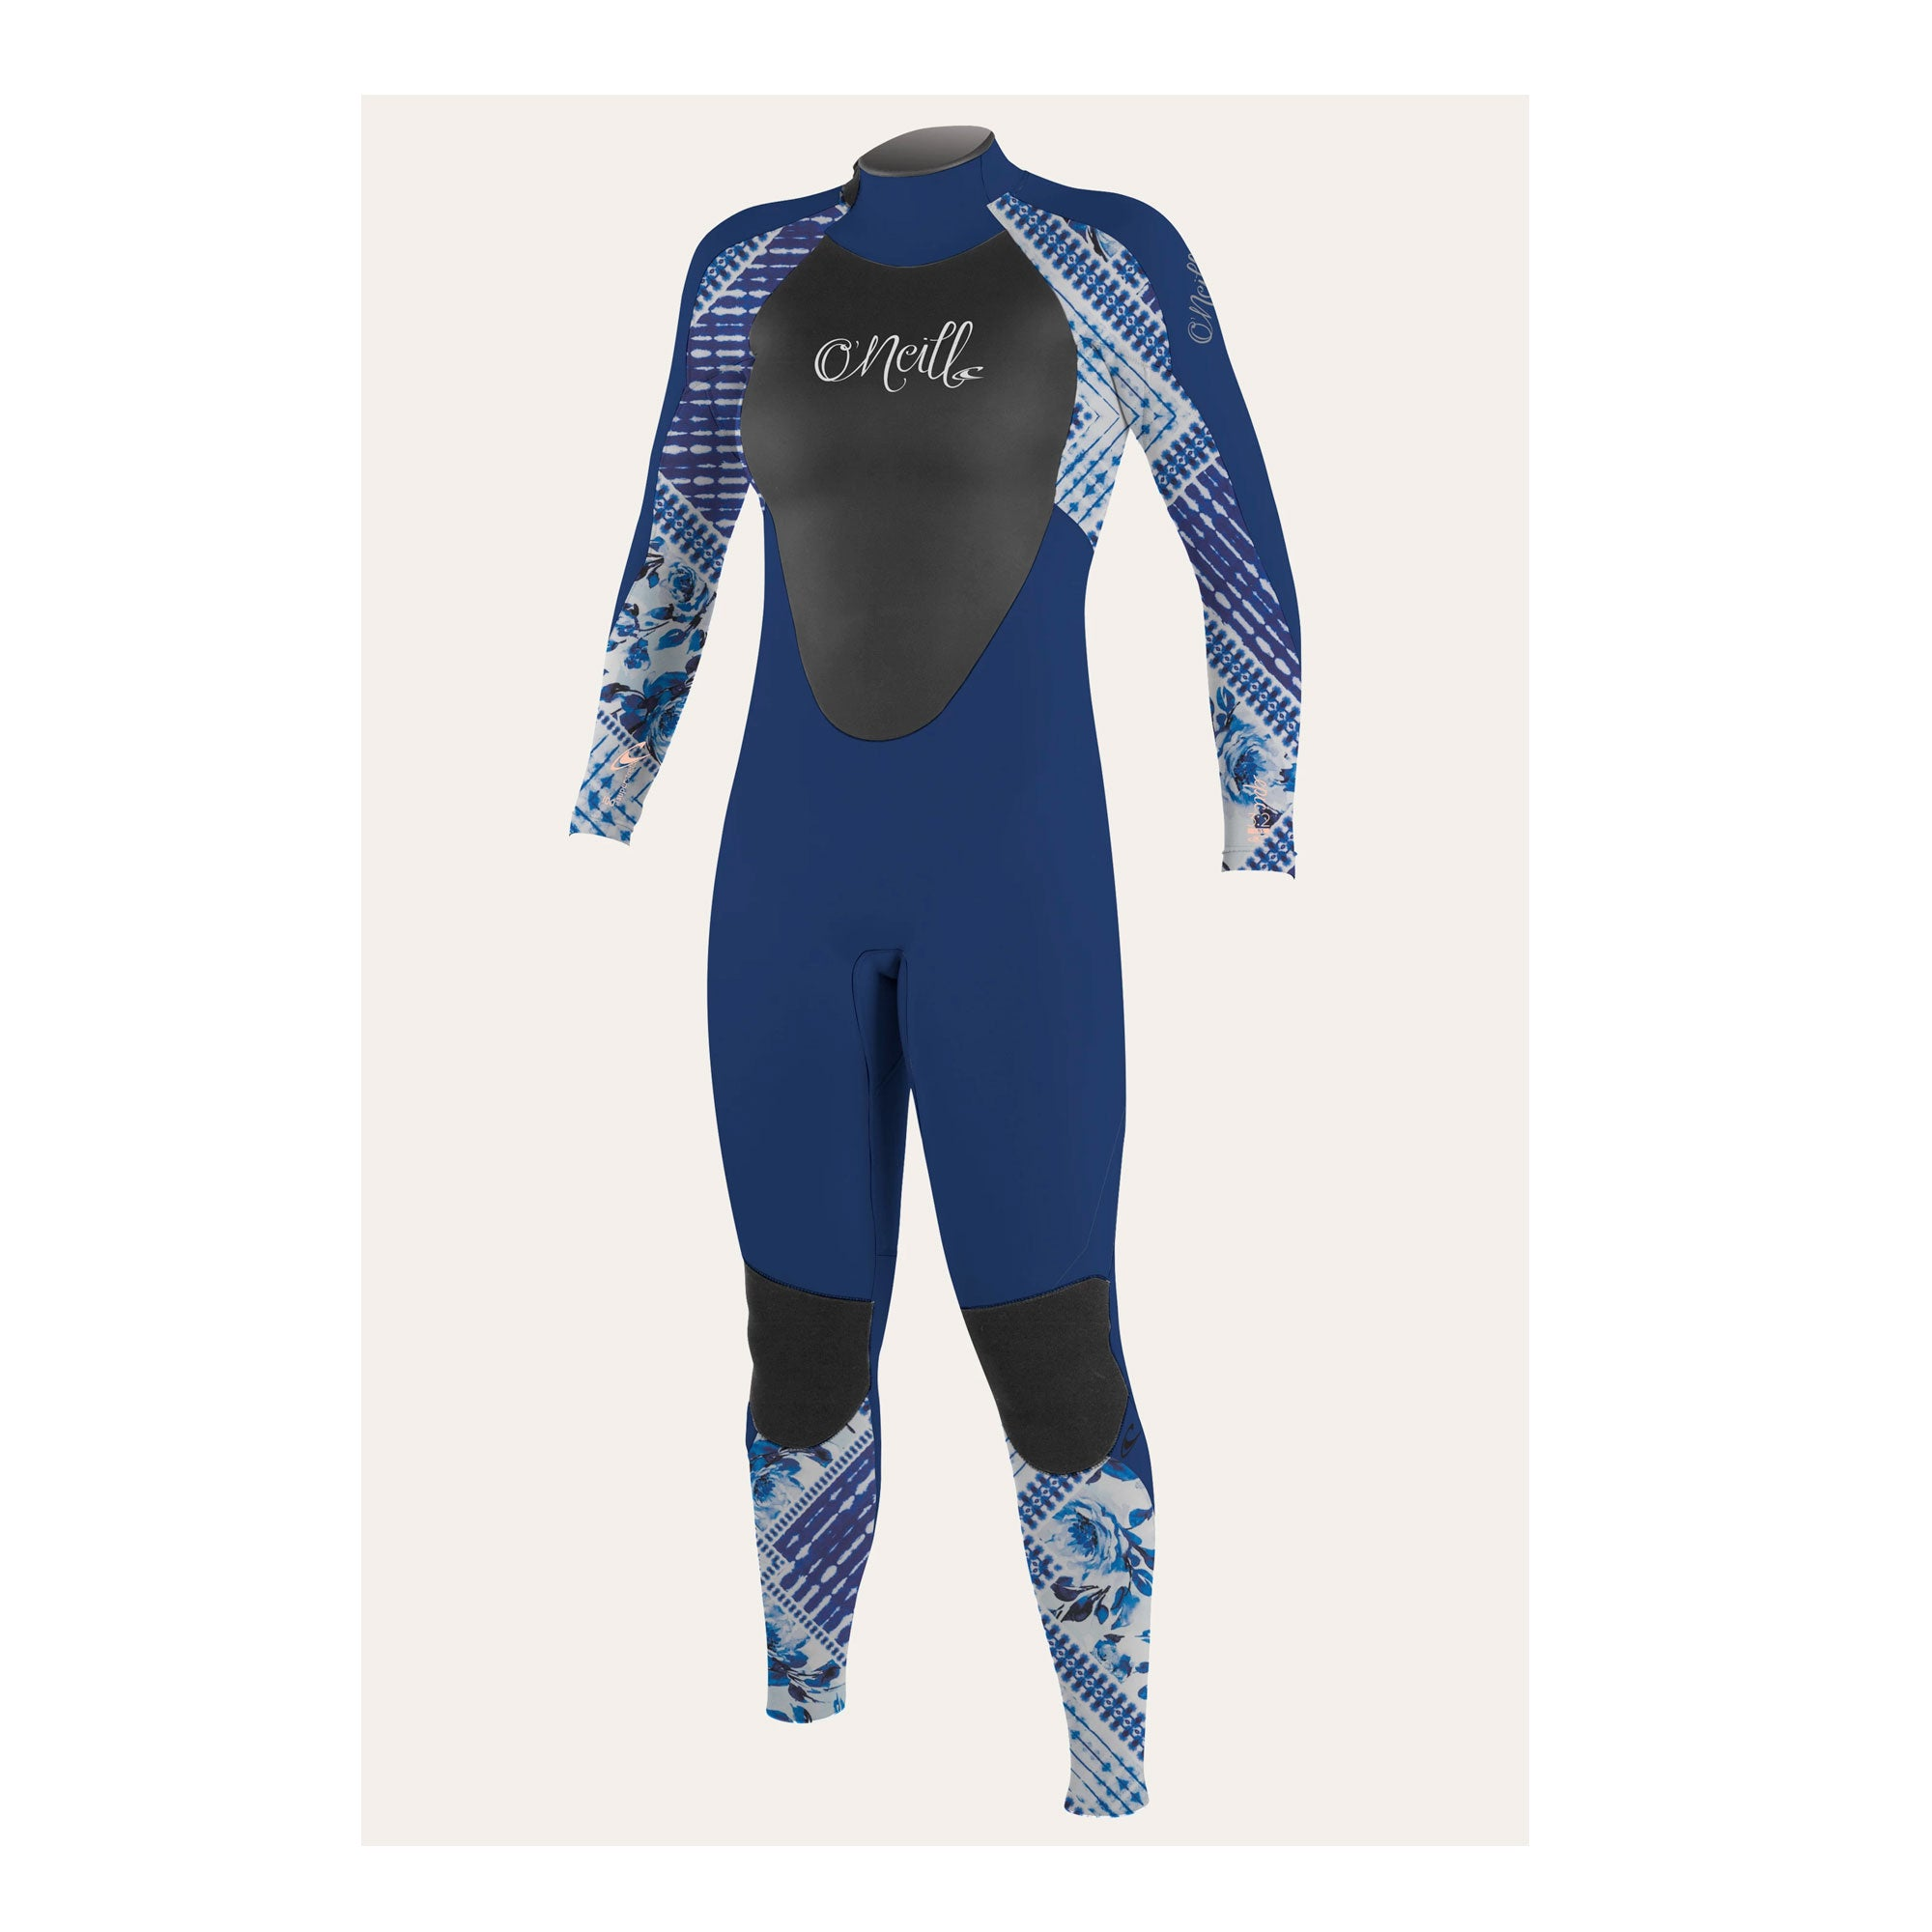 O'Neill Epic 3/2 Youth Girl's L/S Back Zip Wetsuit